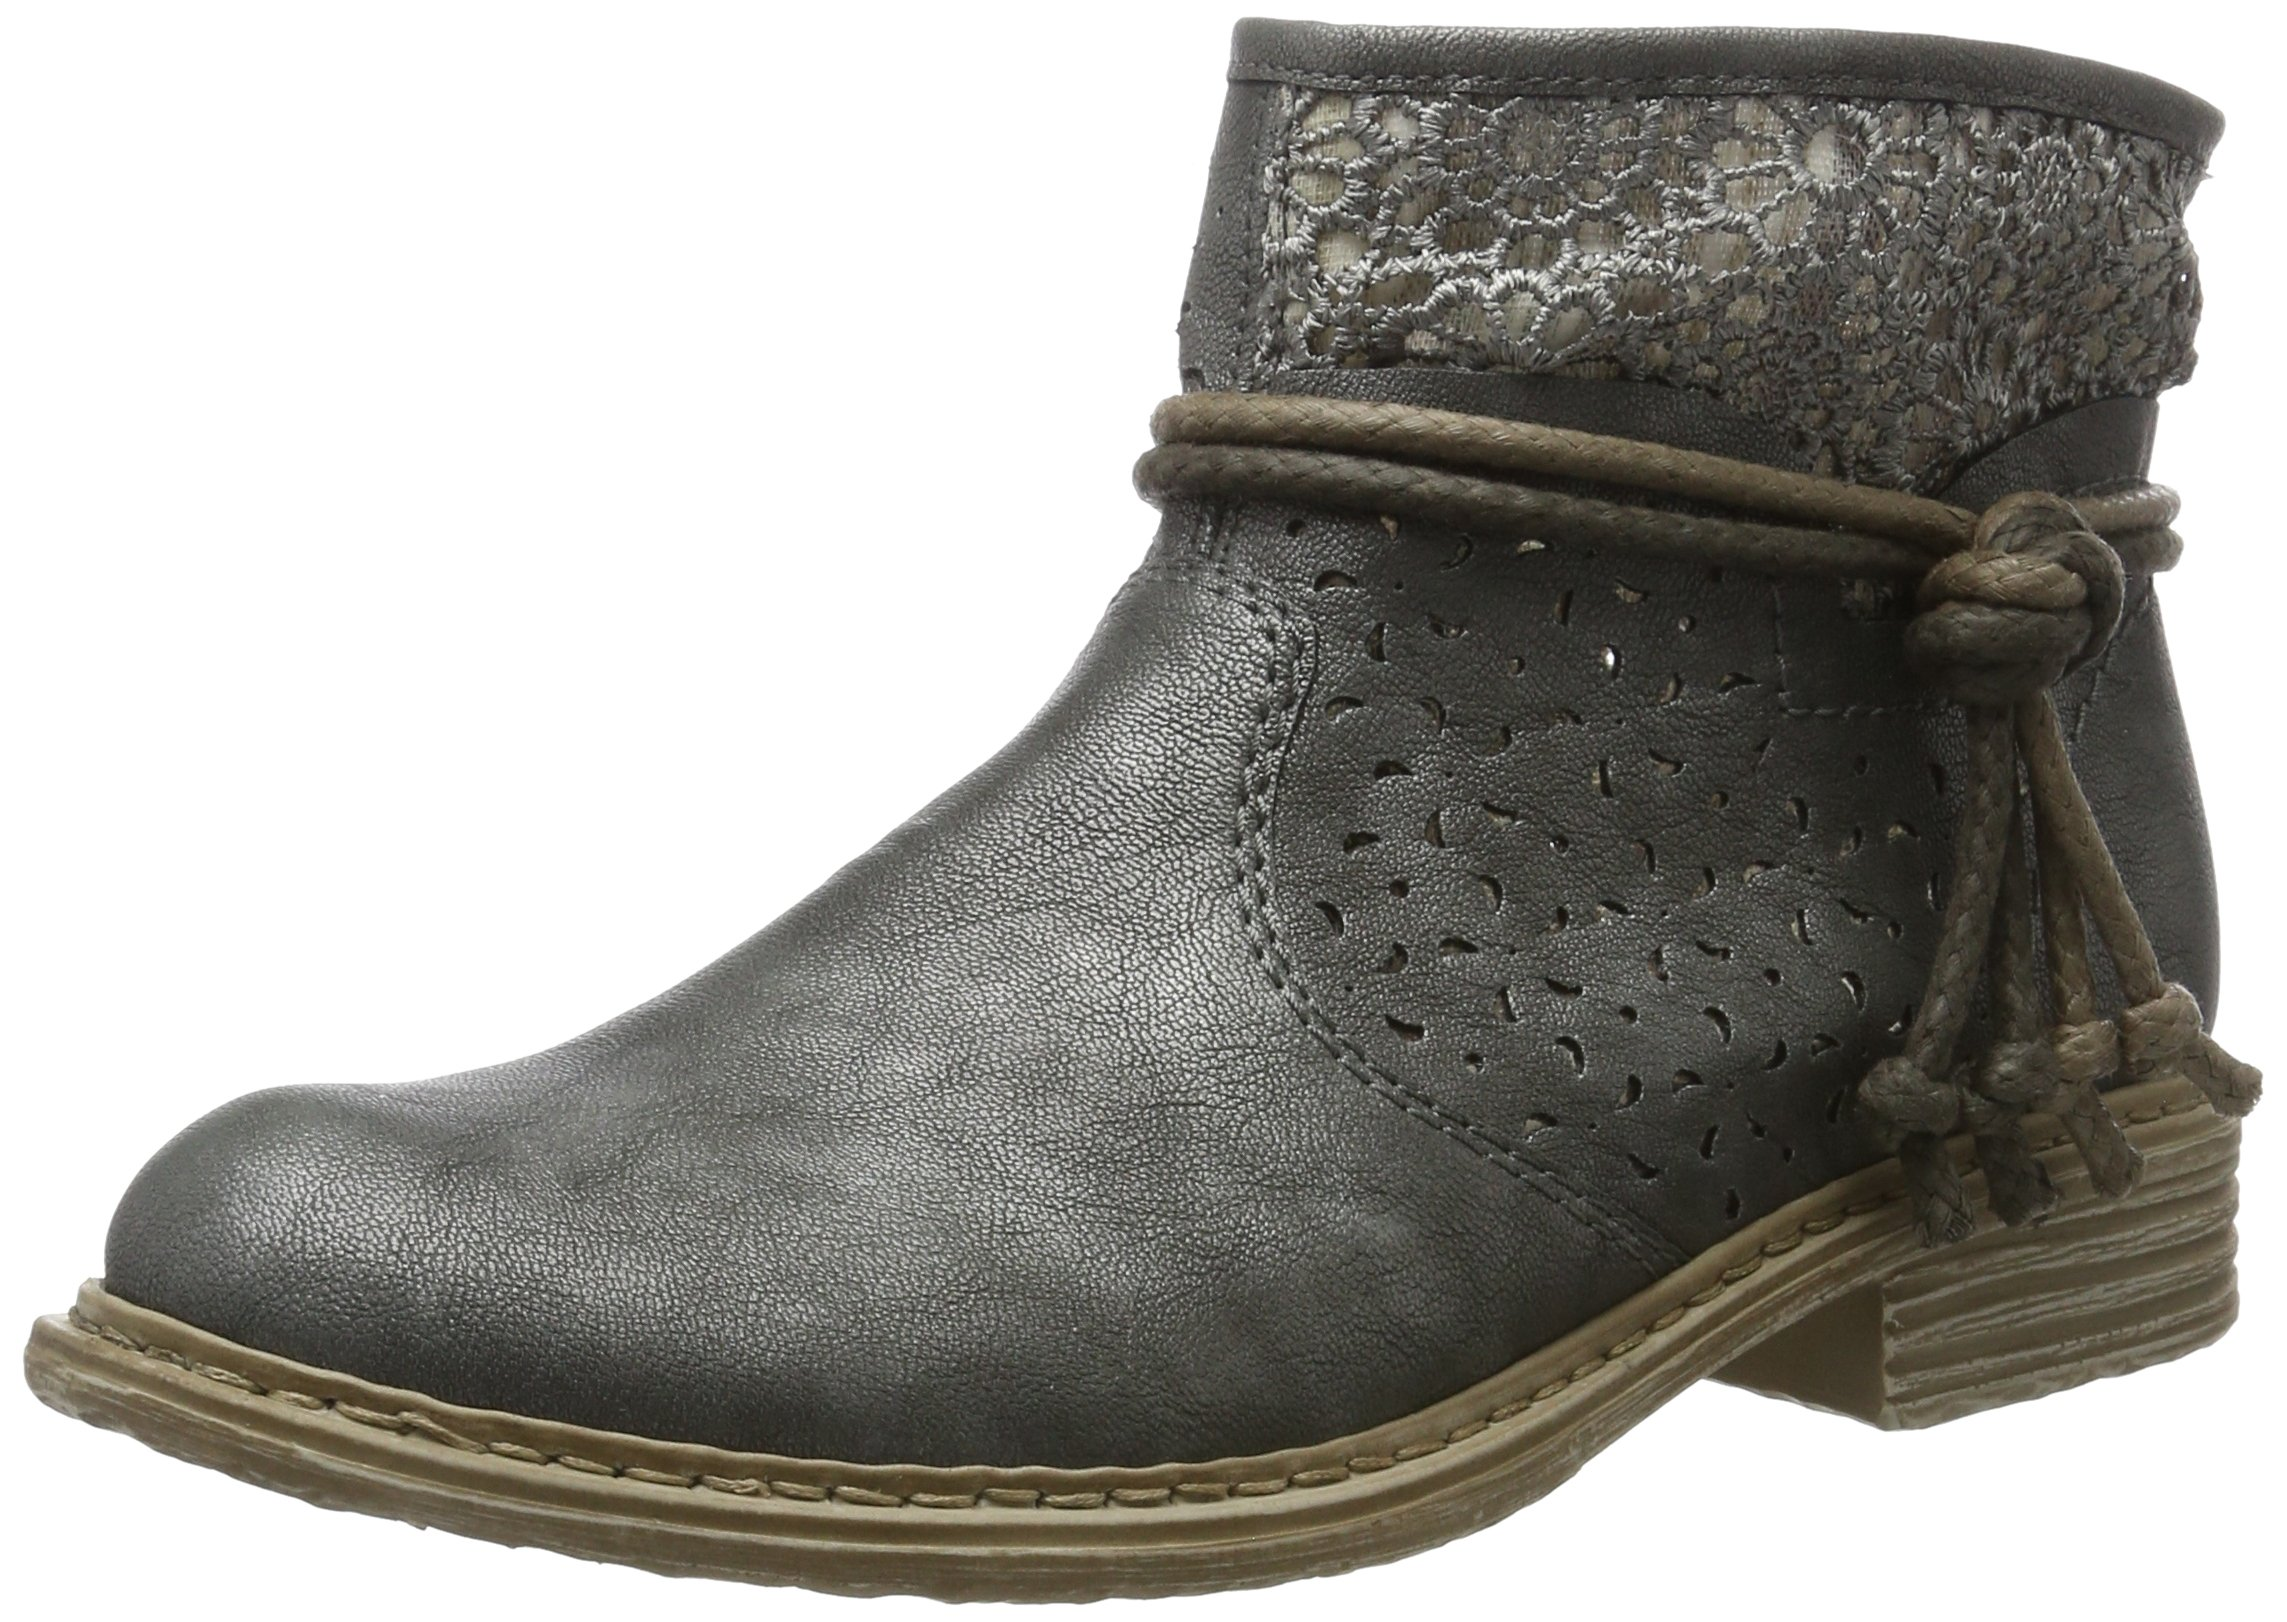 Rieker Womens Summer Boots Lead/Dust Size 10.5 B(M) US